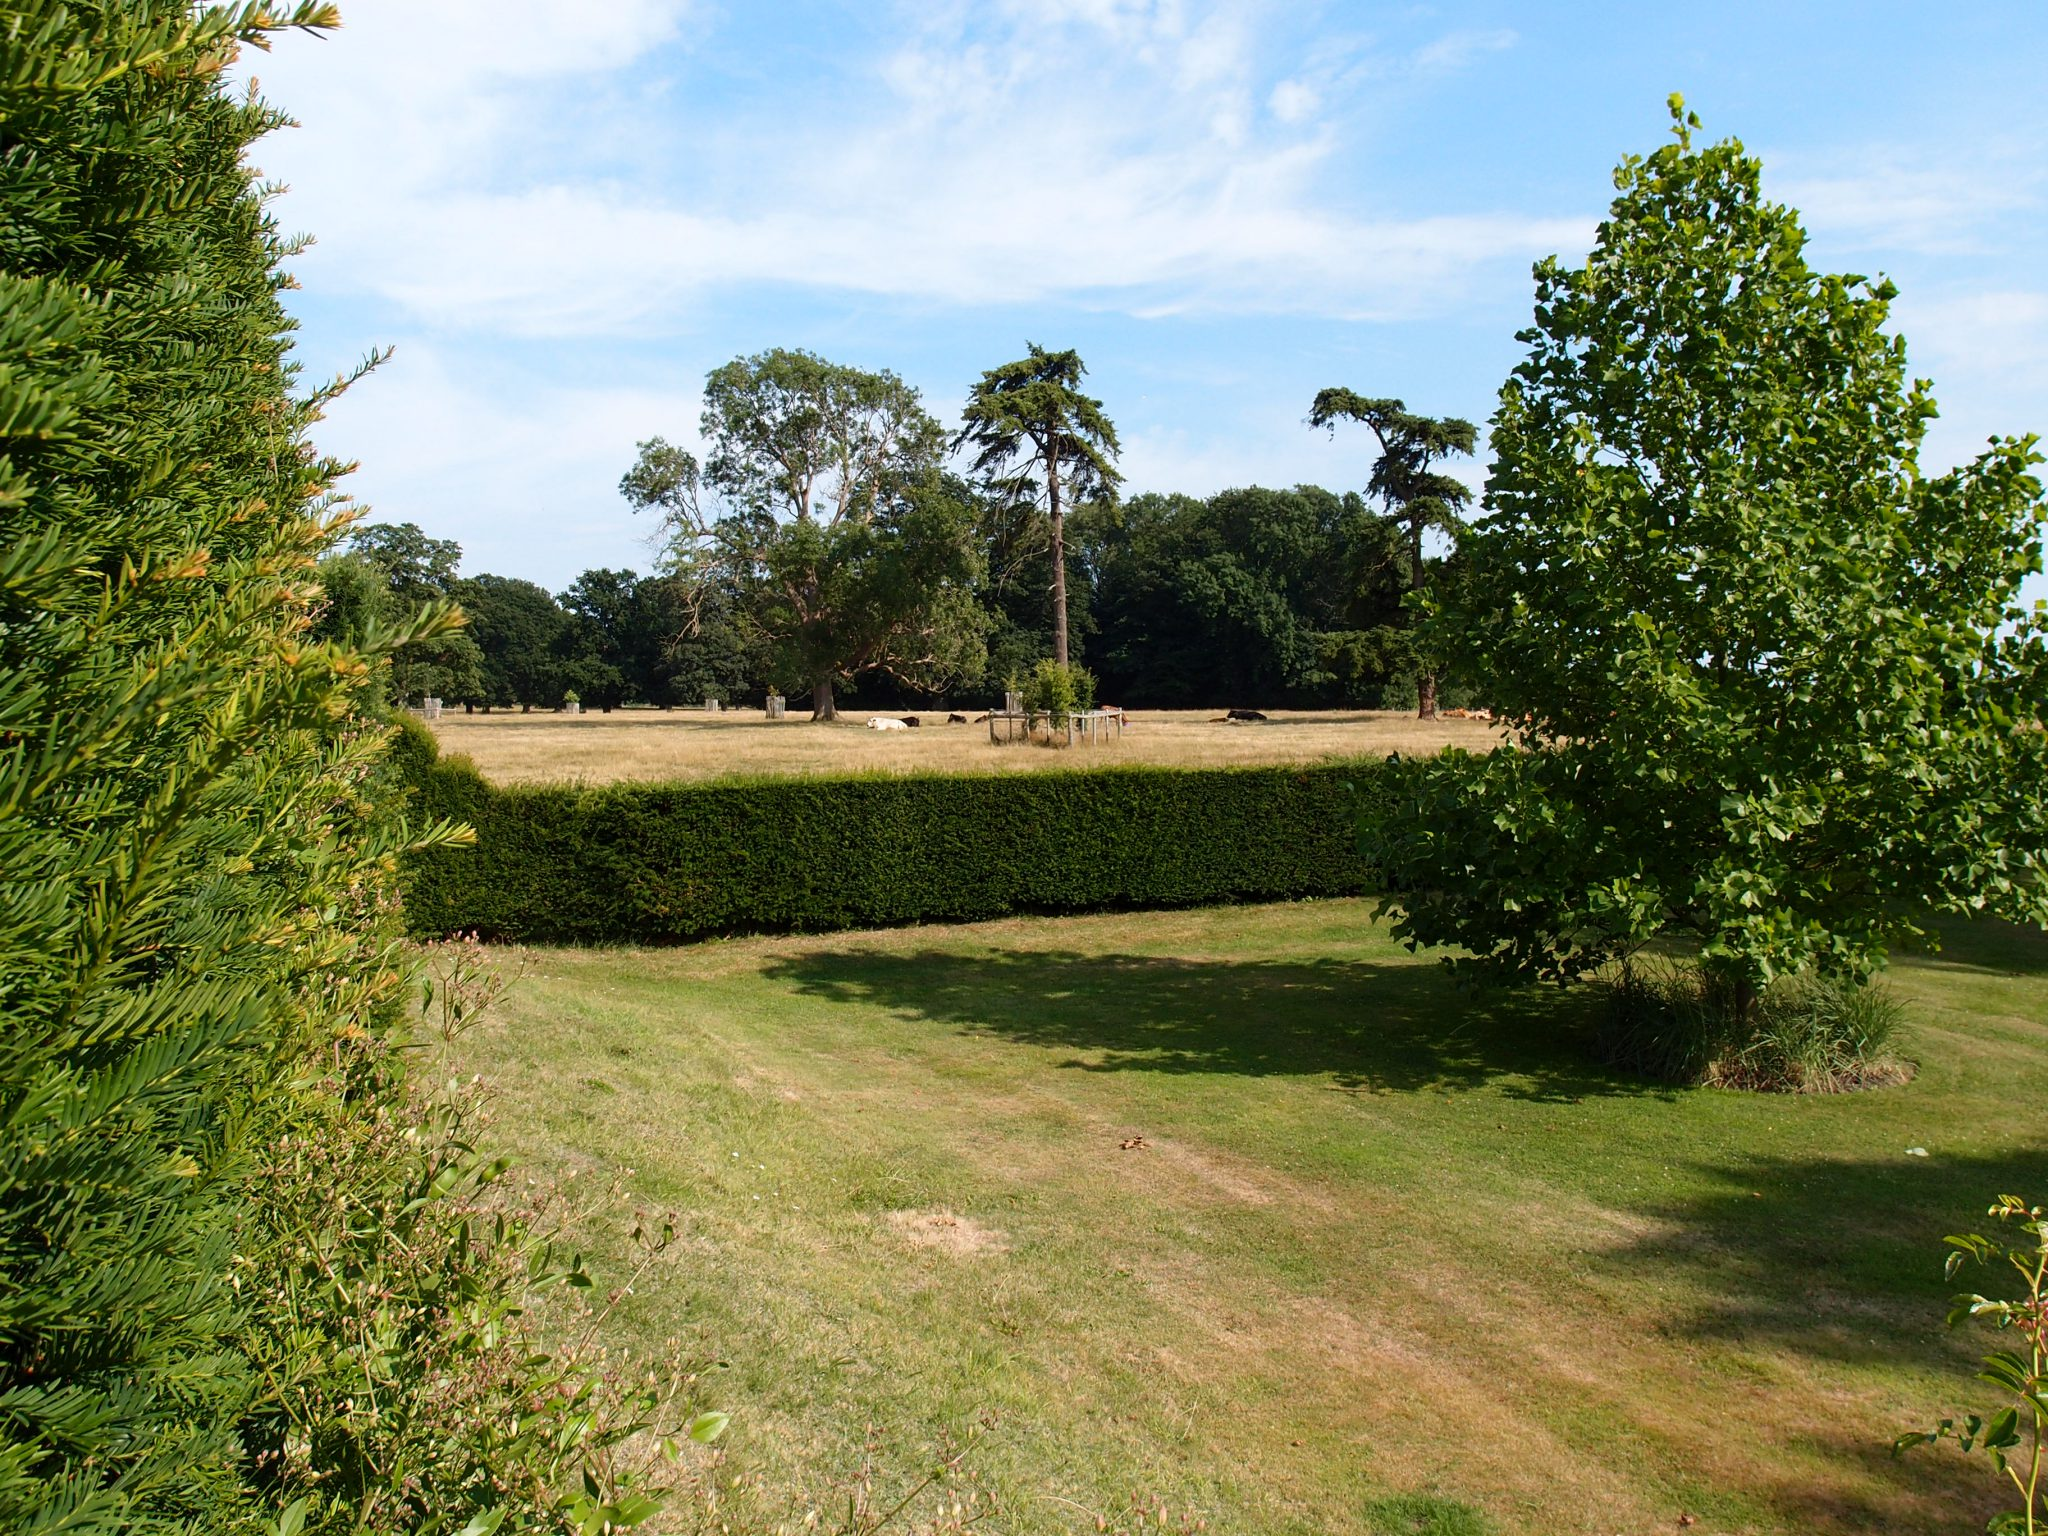 A closer look at the cattle who graze, on the other side of the Garden's perimeter wall of yew hedges.